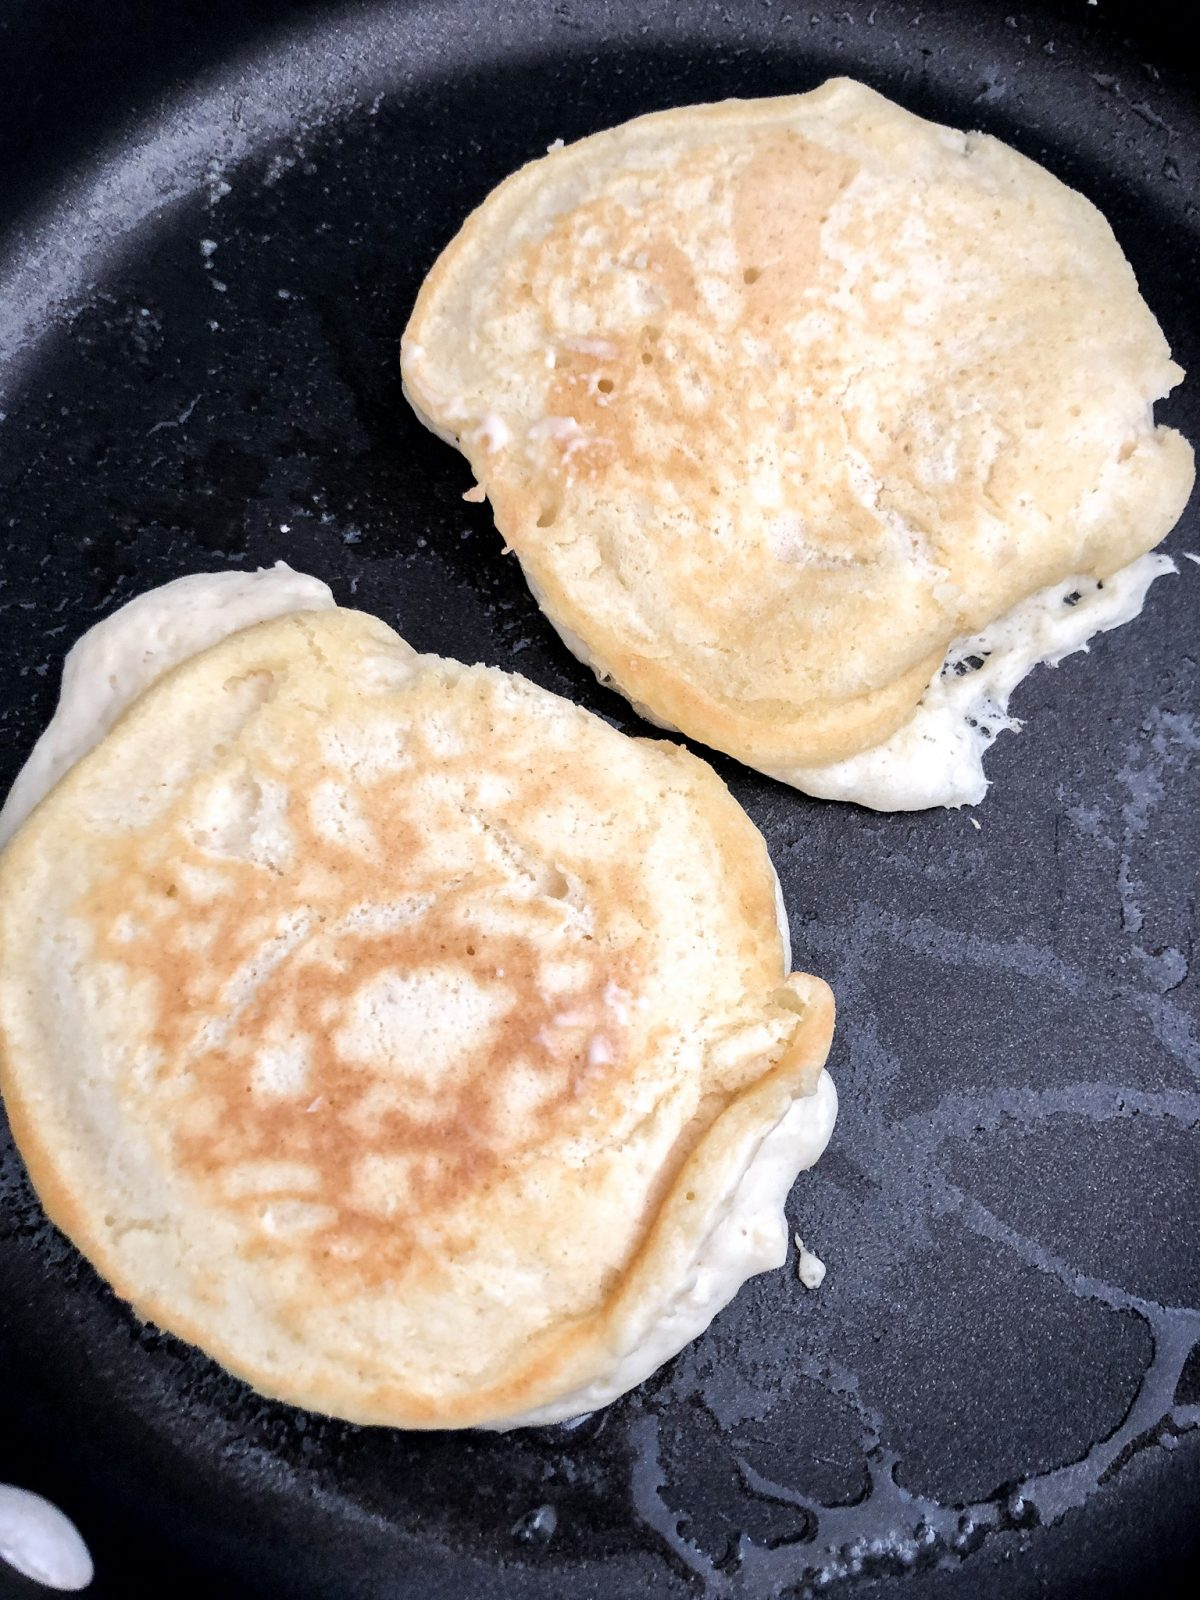 Pancakes on a buttered Skillet cooking